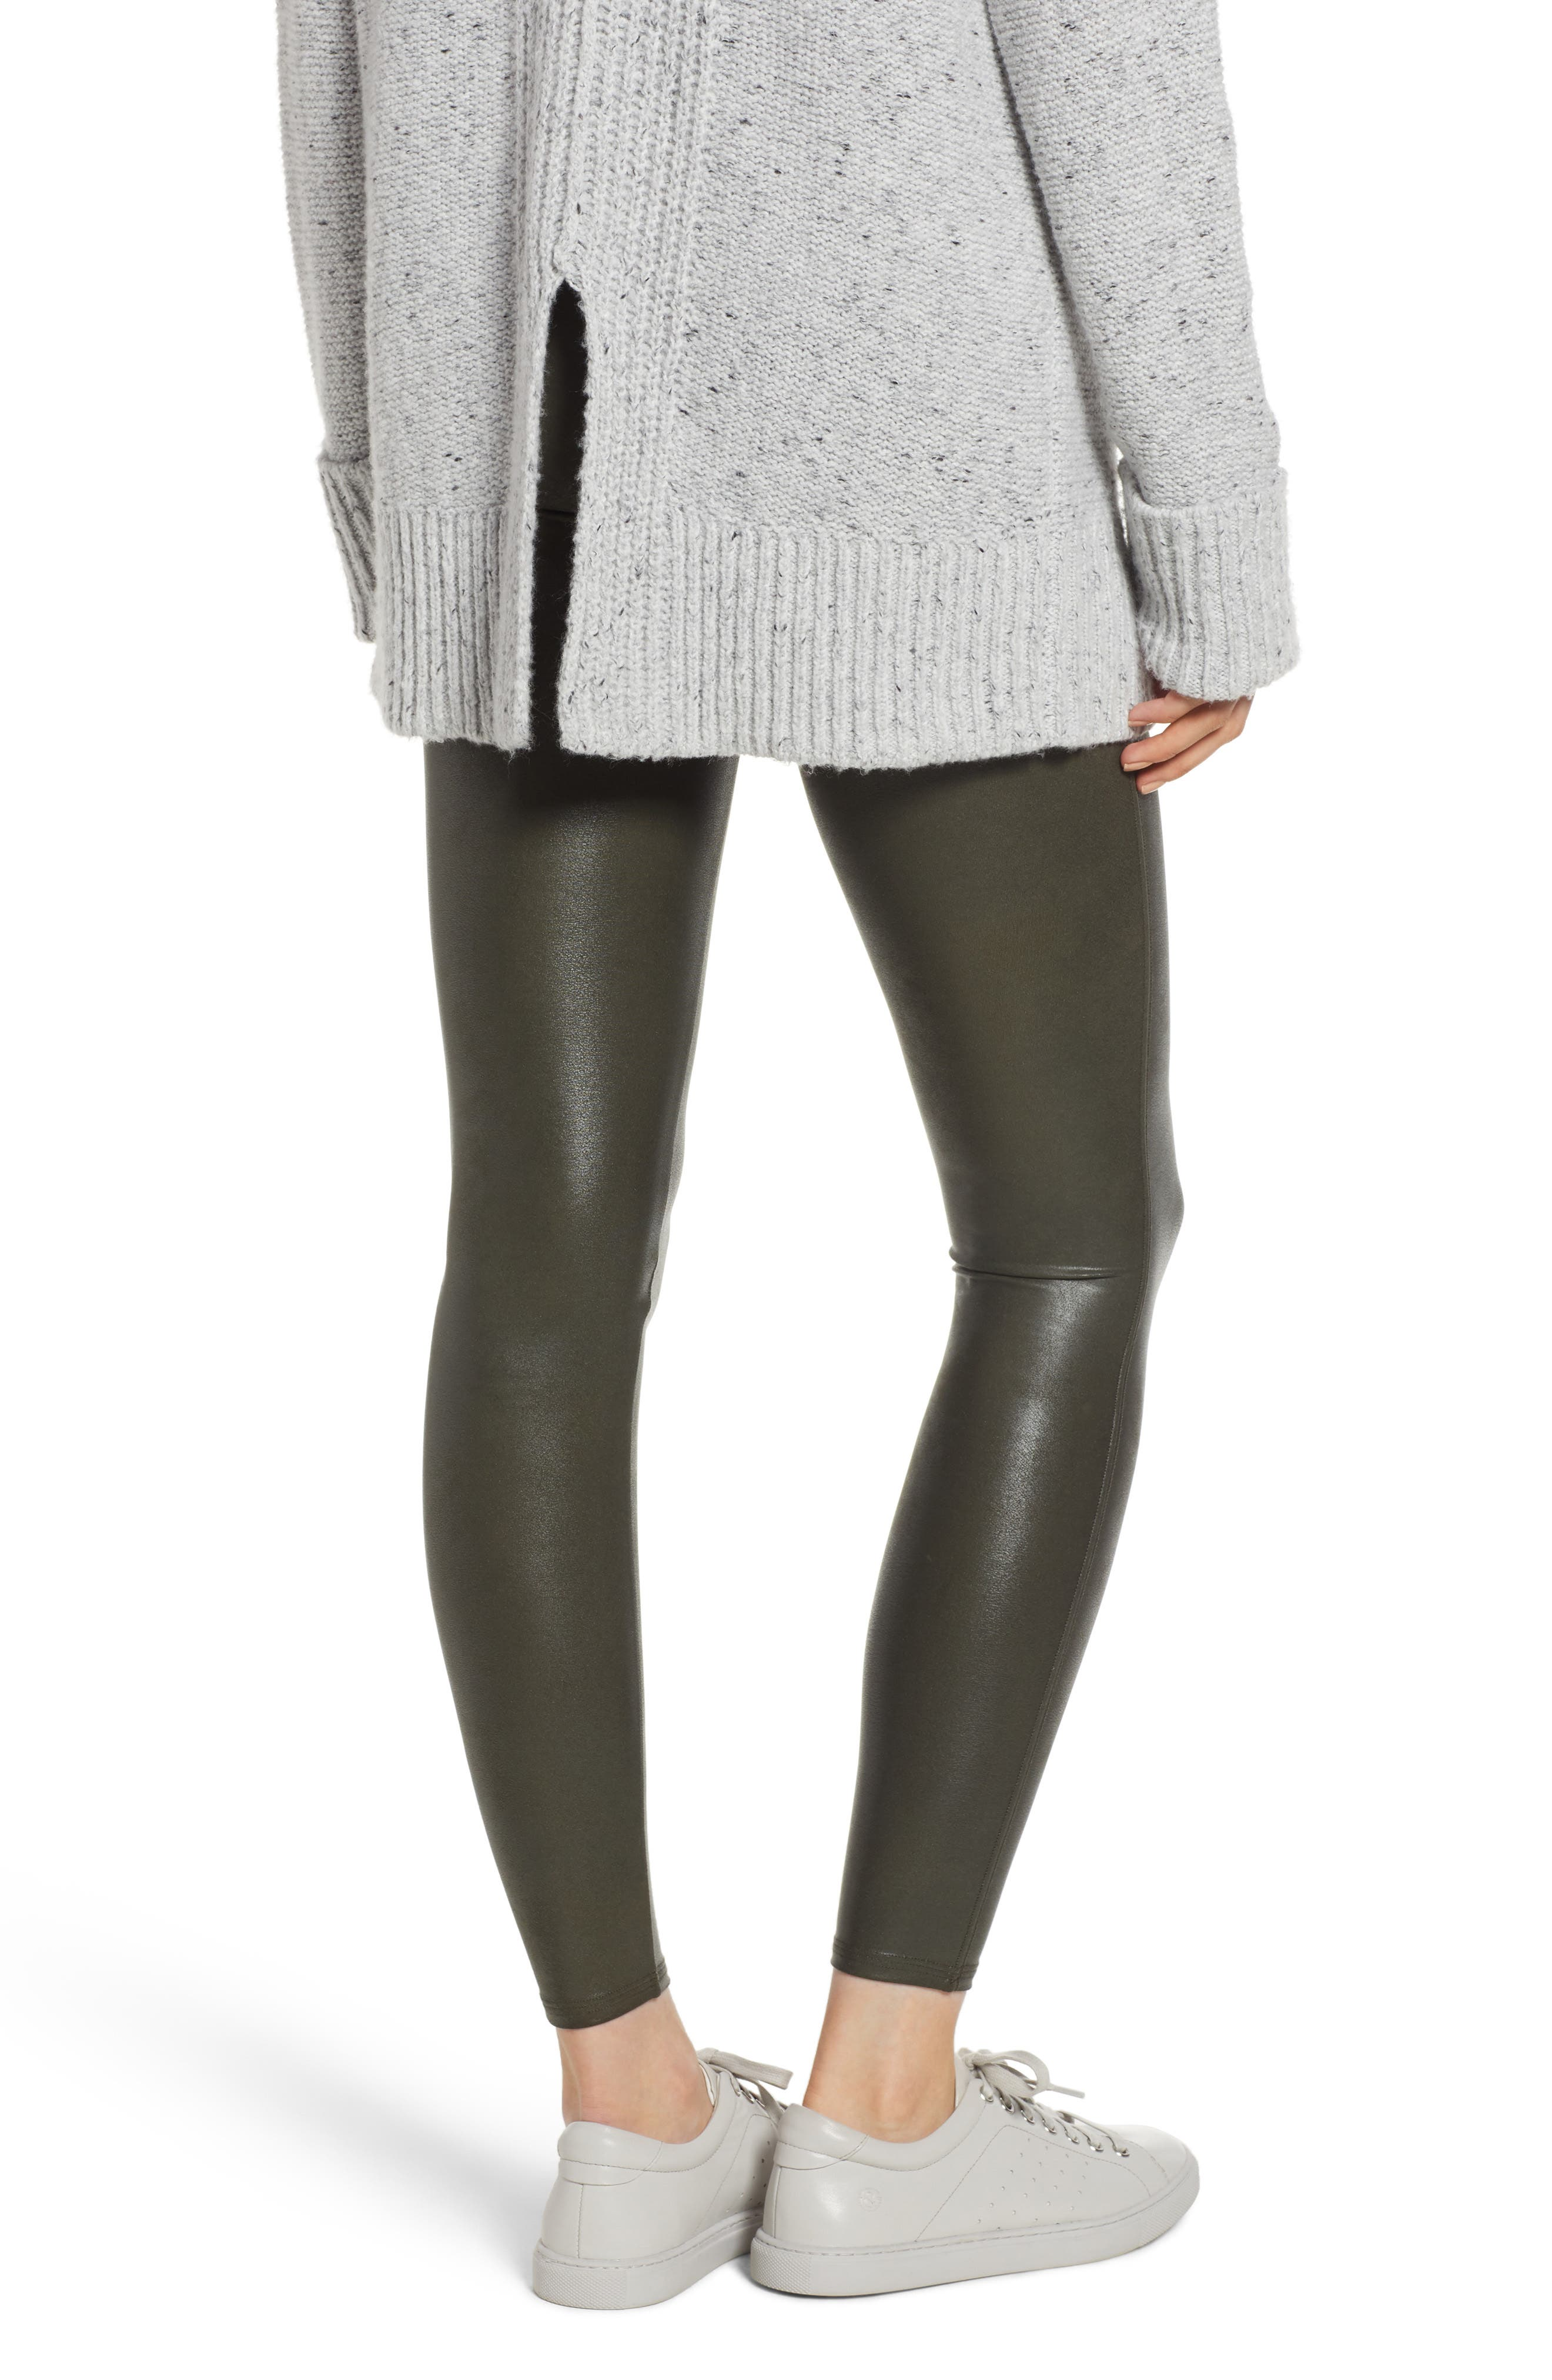 Women Leggings Nordstrom Faux For Leather qnFwFp0Hx5